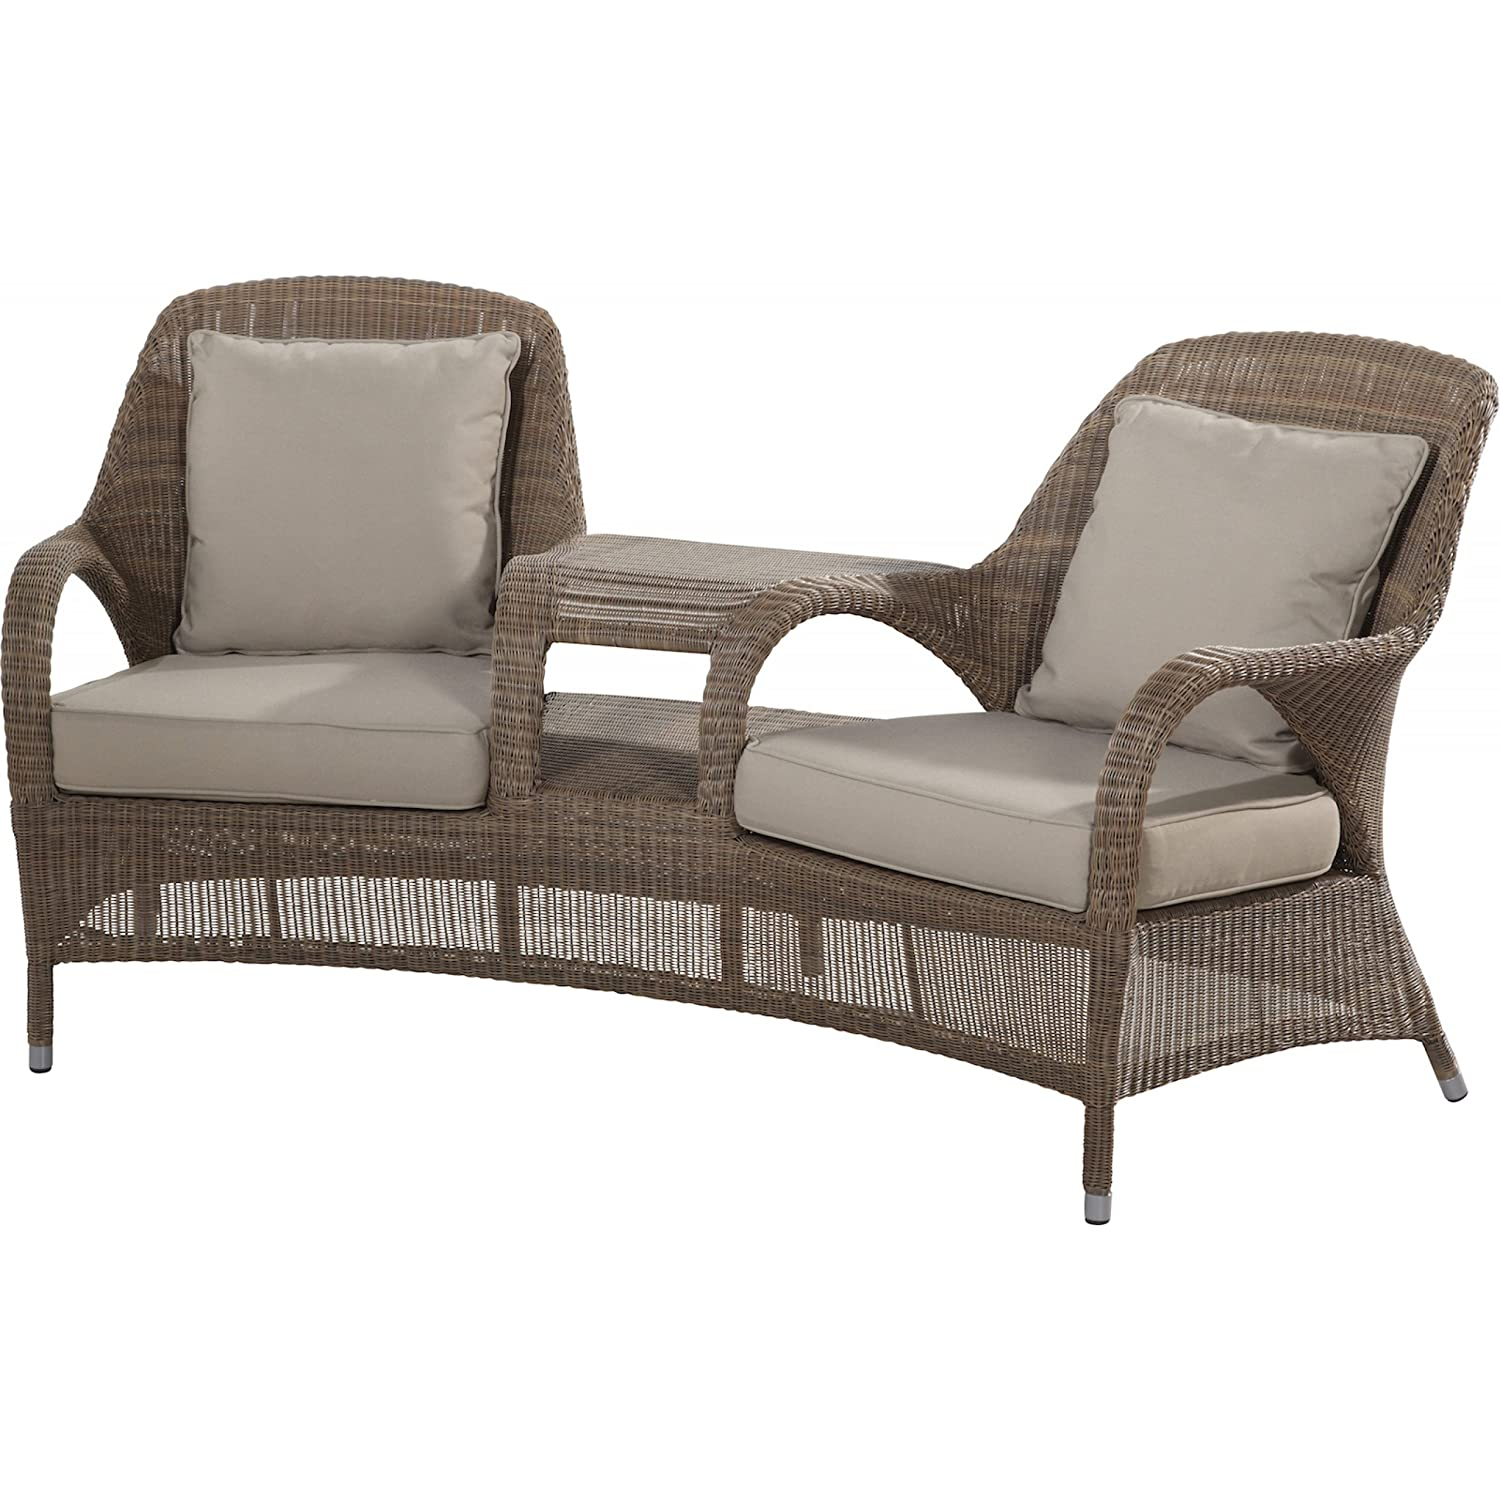 4Seasons Outdoor Sussex Love Seat Polyloom taupe inkl 4 Kissen 212396